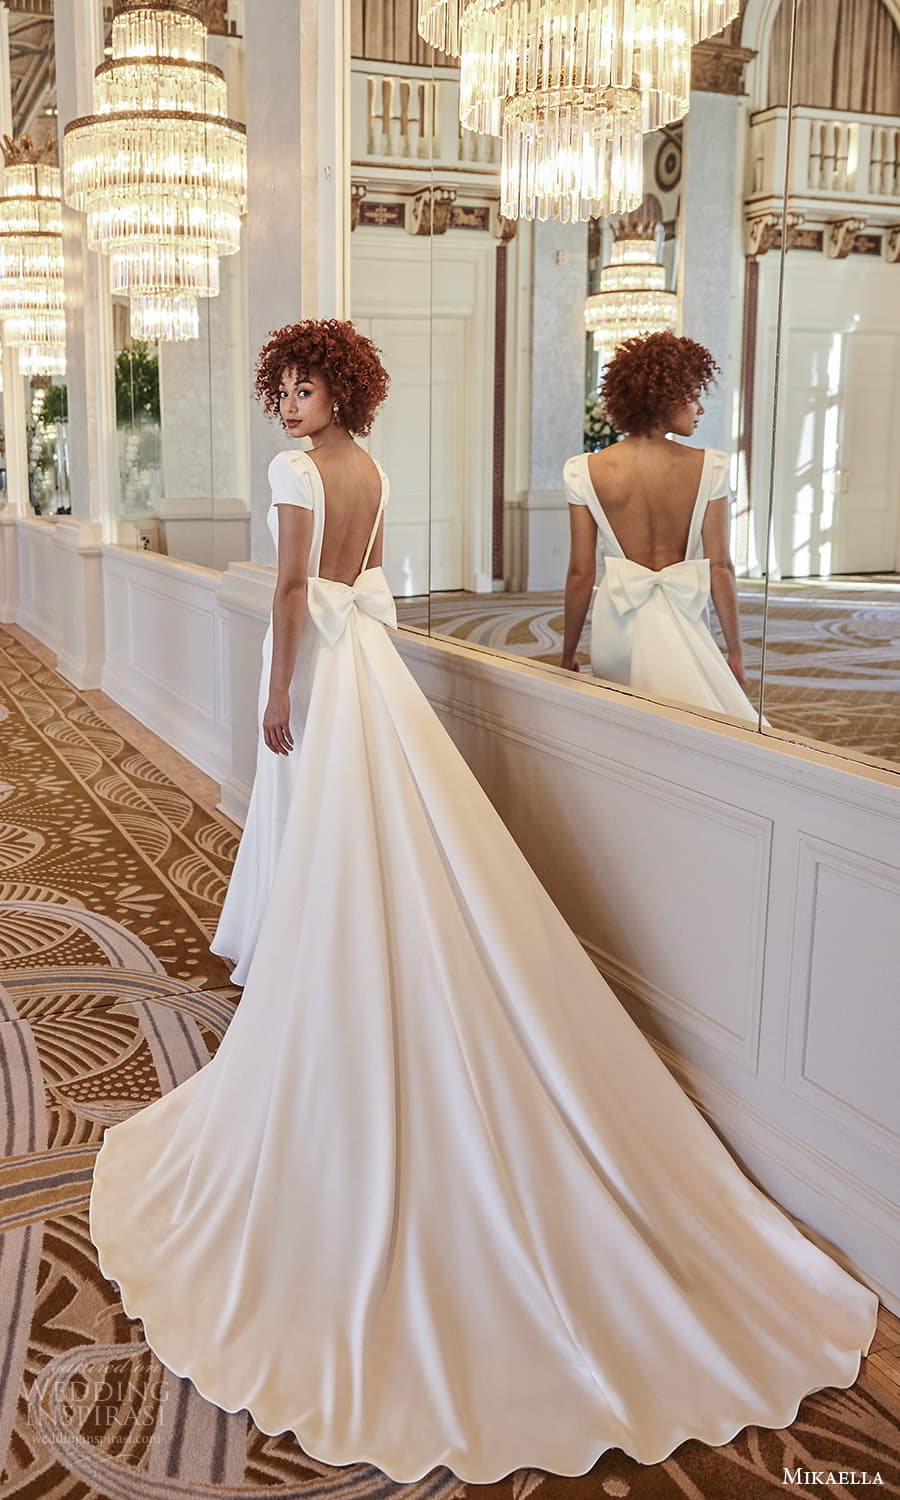 mikaella fall 2021 bridal short puff sleeves bateau neckline clean minimalist sheath wedding dress chapel train low back overskirt (3) bv